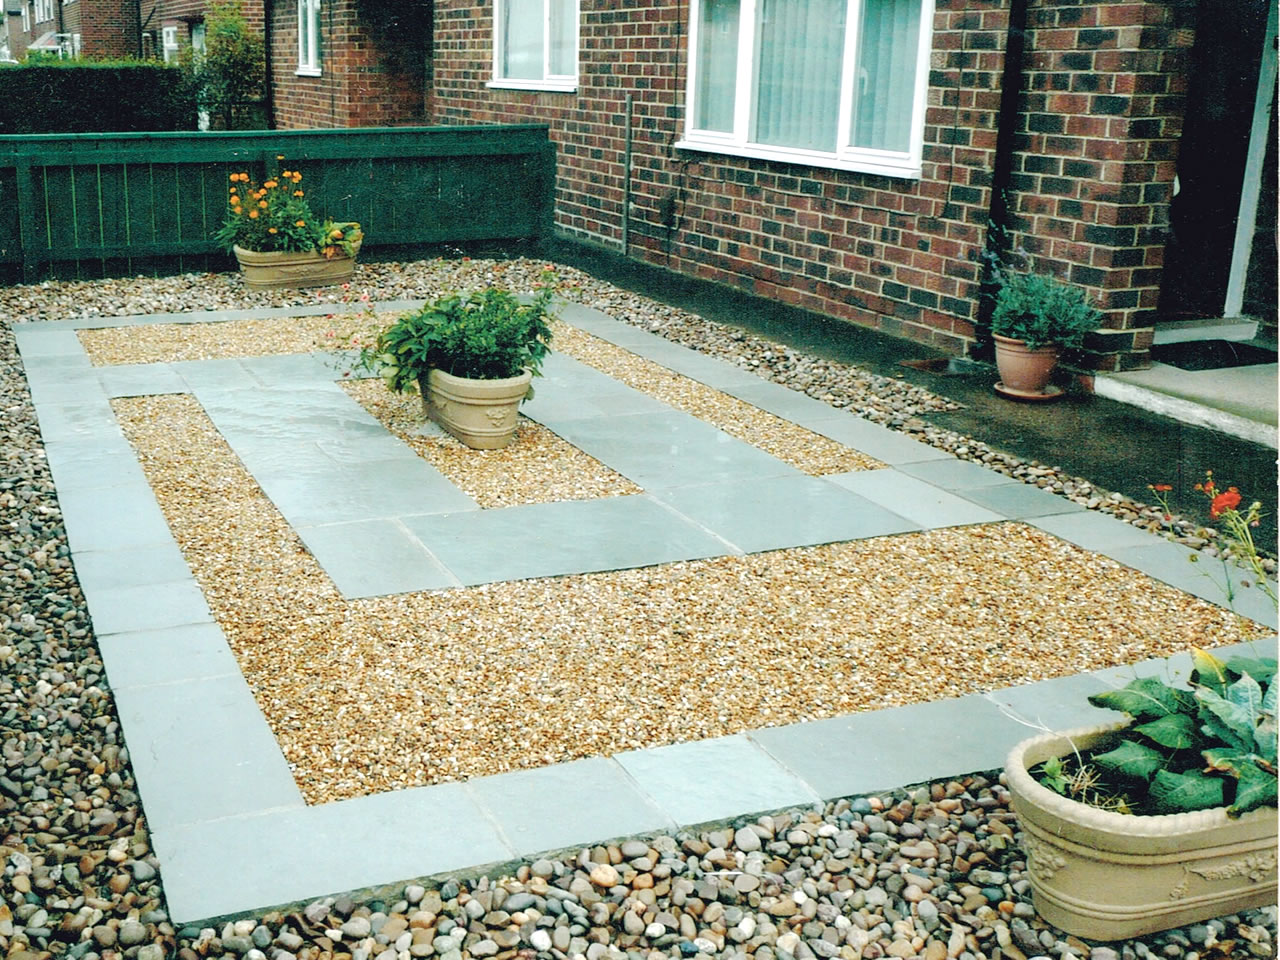 Gravel Gardens, Low Maintenance and Non-Maintenance Gardens